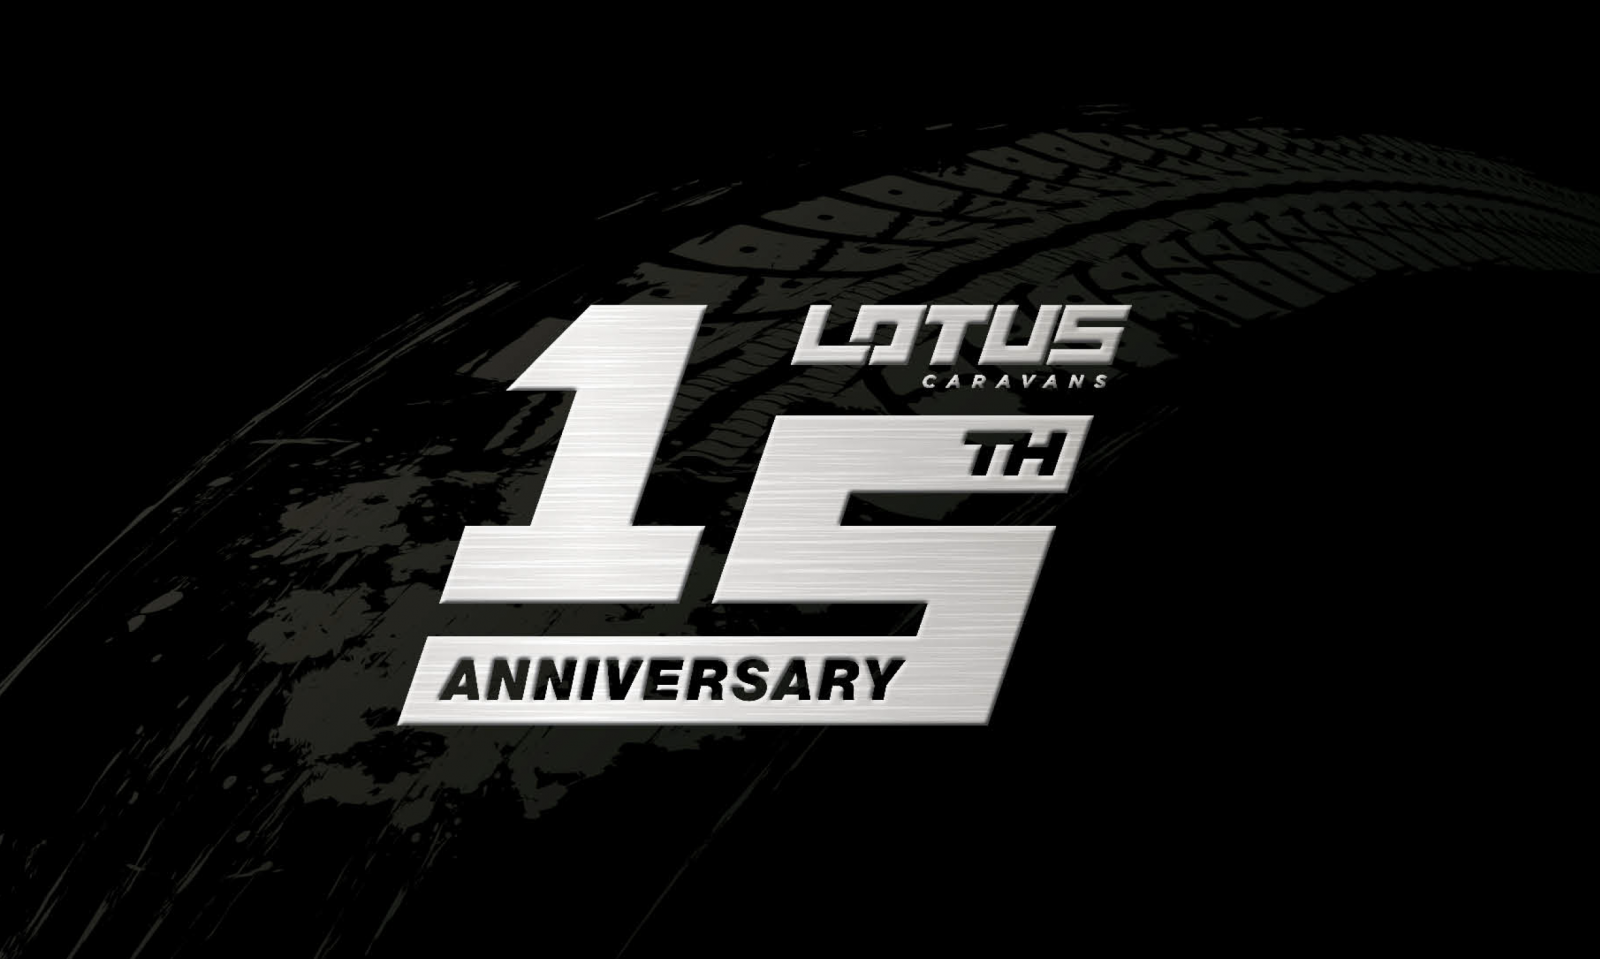 Lotus Caravans celebrates 15 years